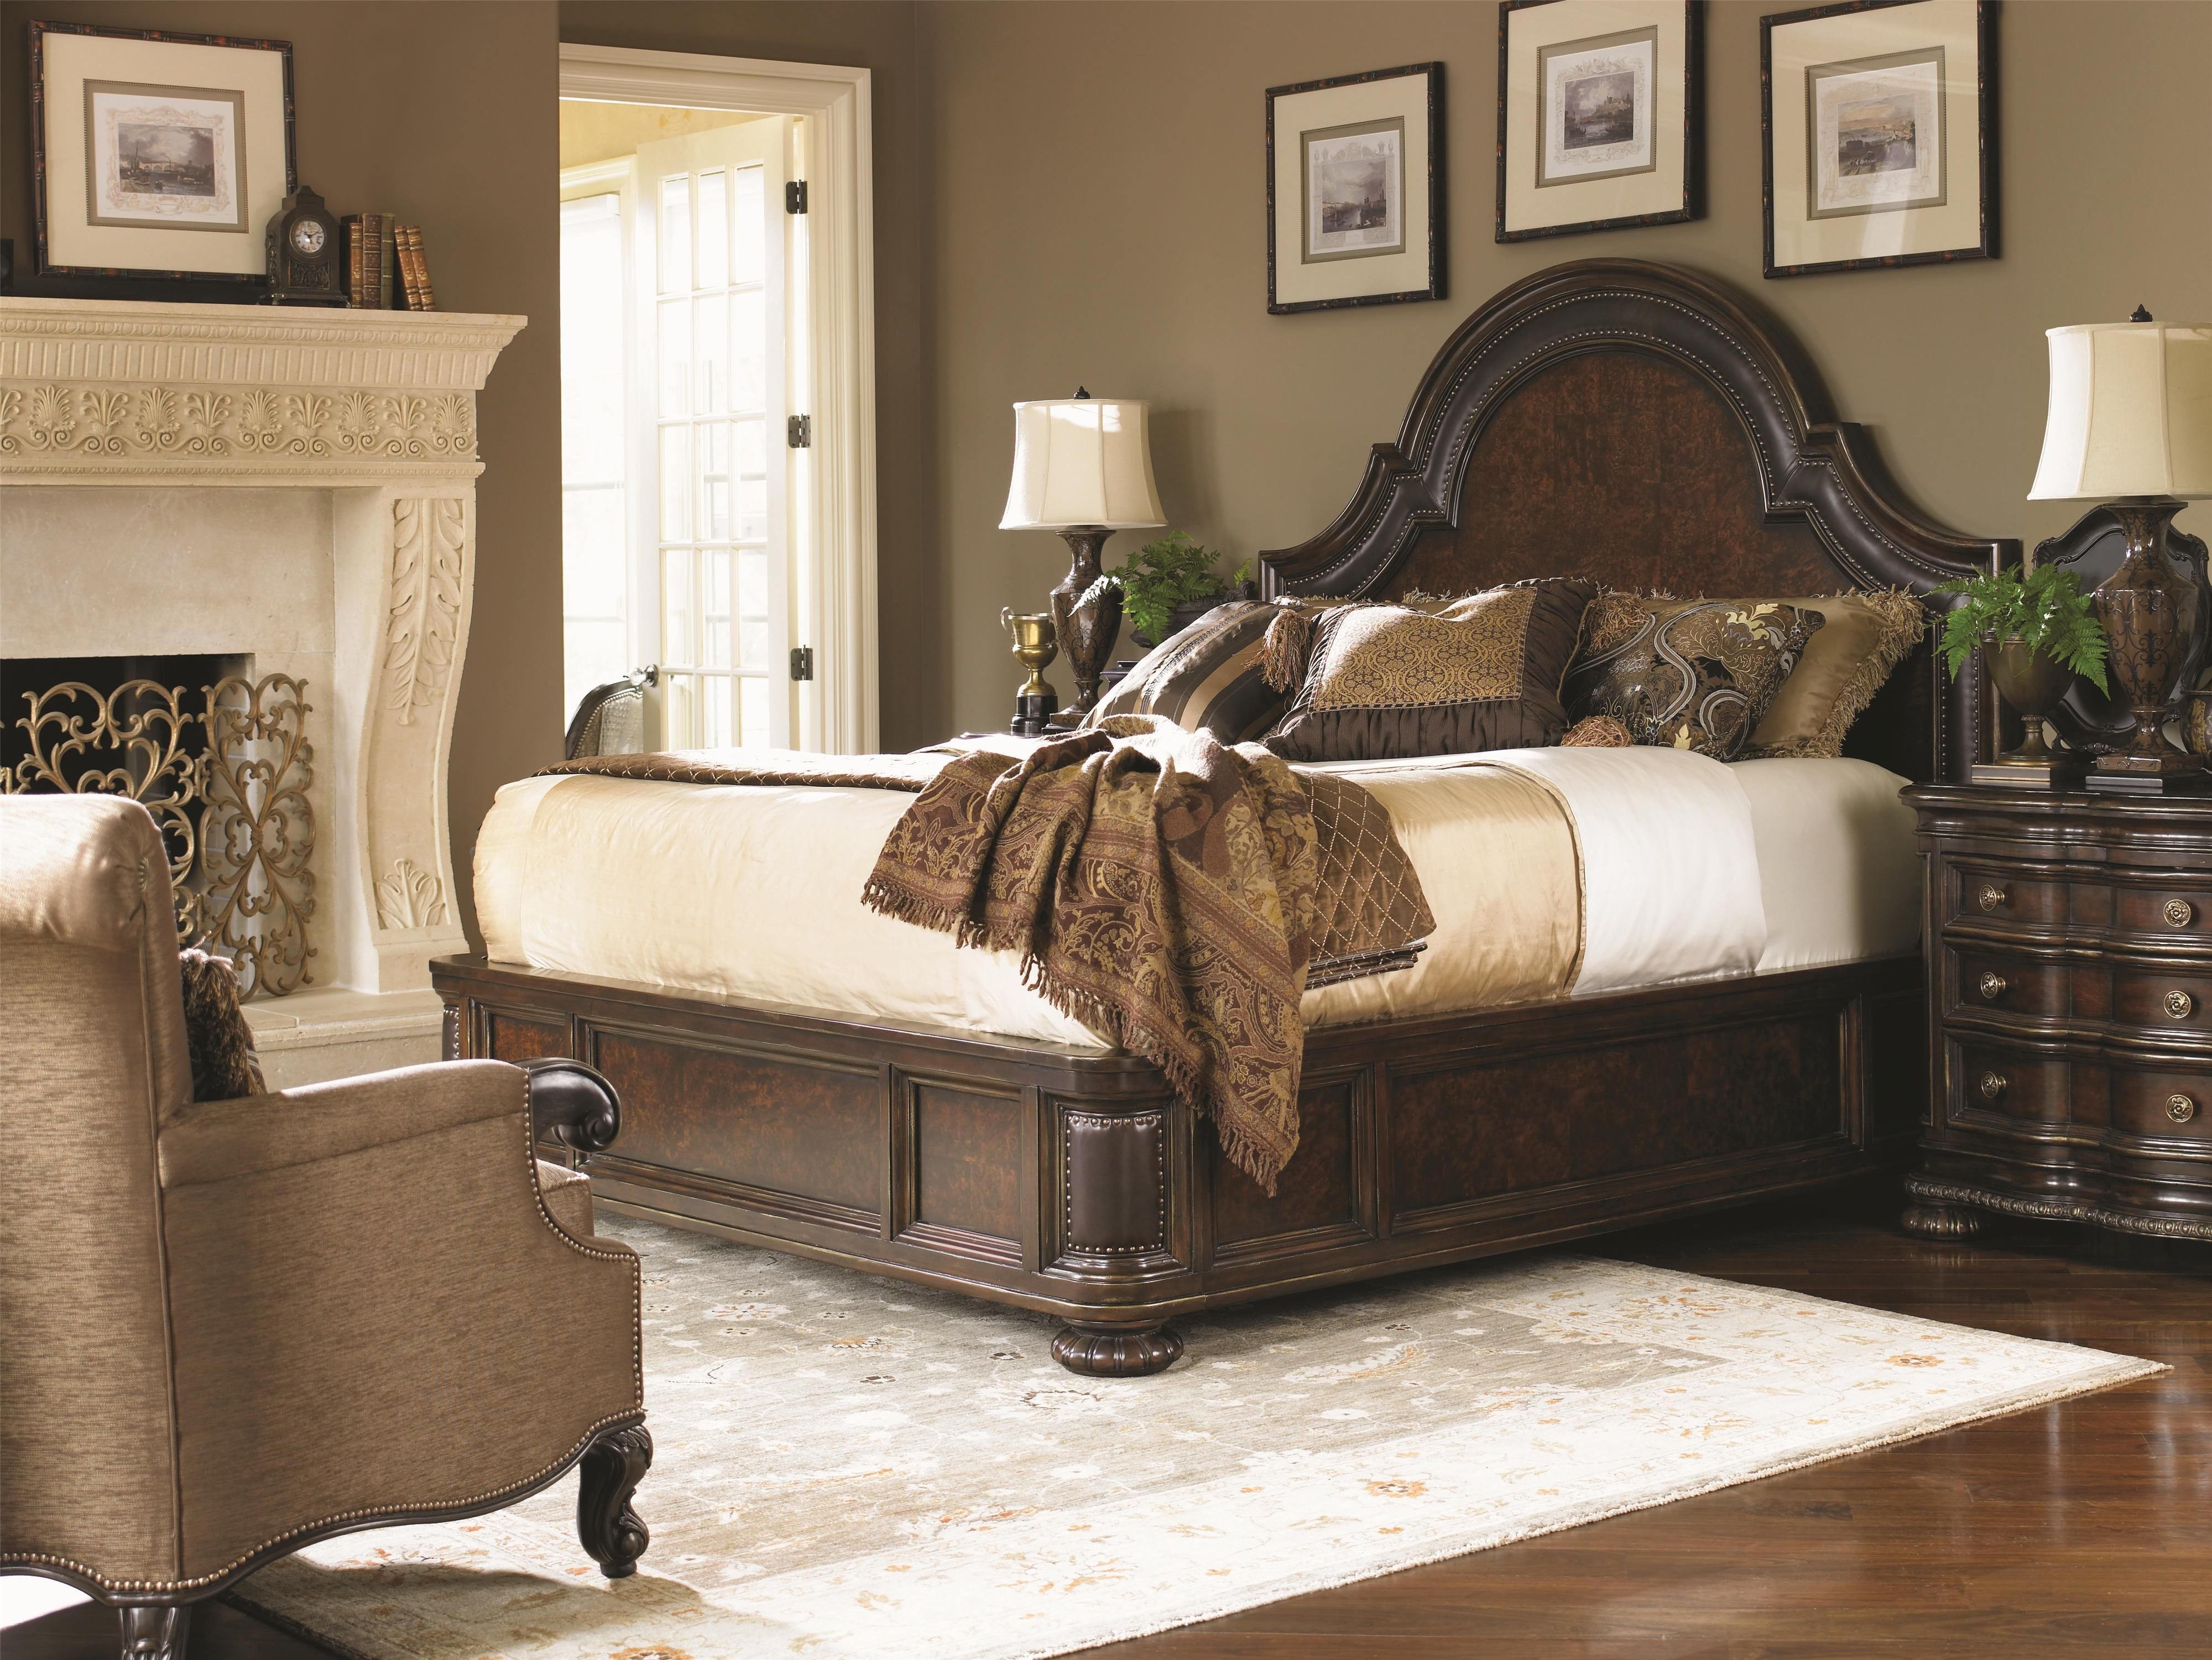 This luxury statement bed features a Walnut Burl on the headboard, footboard and side rails. The multi-tonal wood brings warmth and distinction to this bold bed.